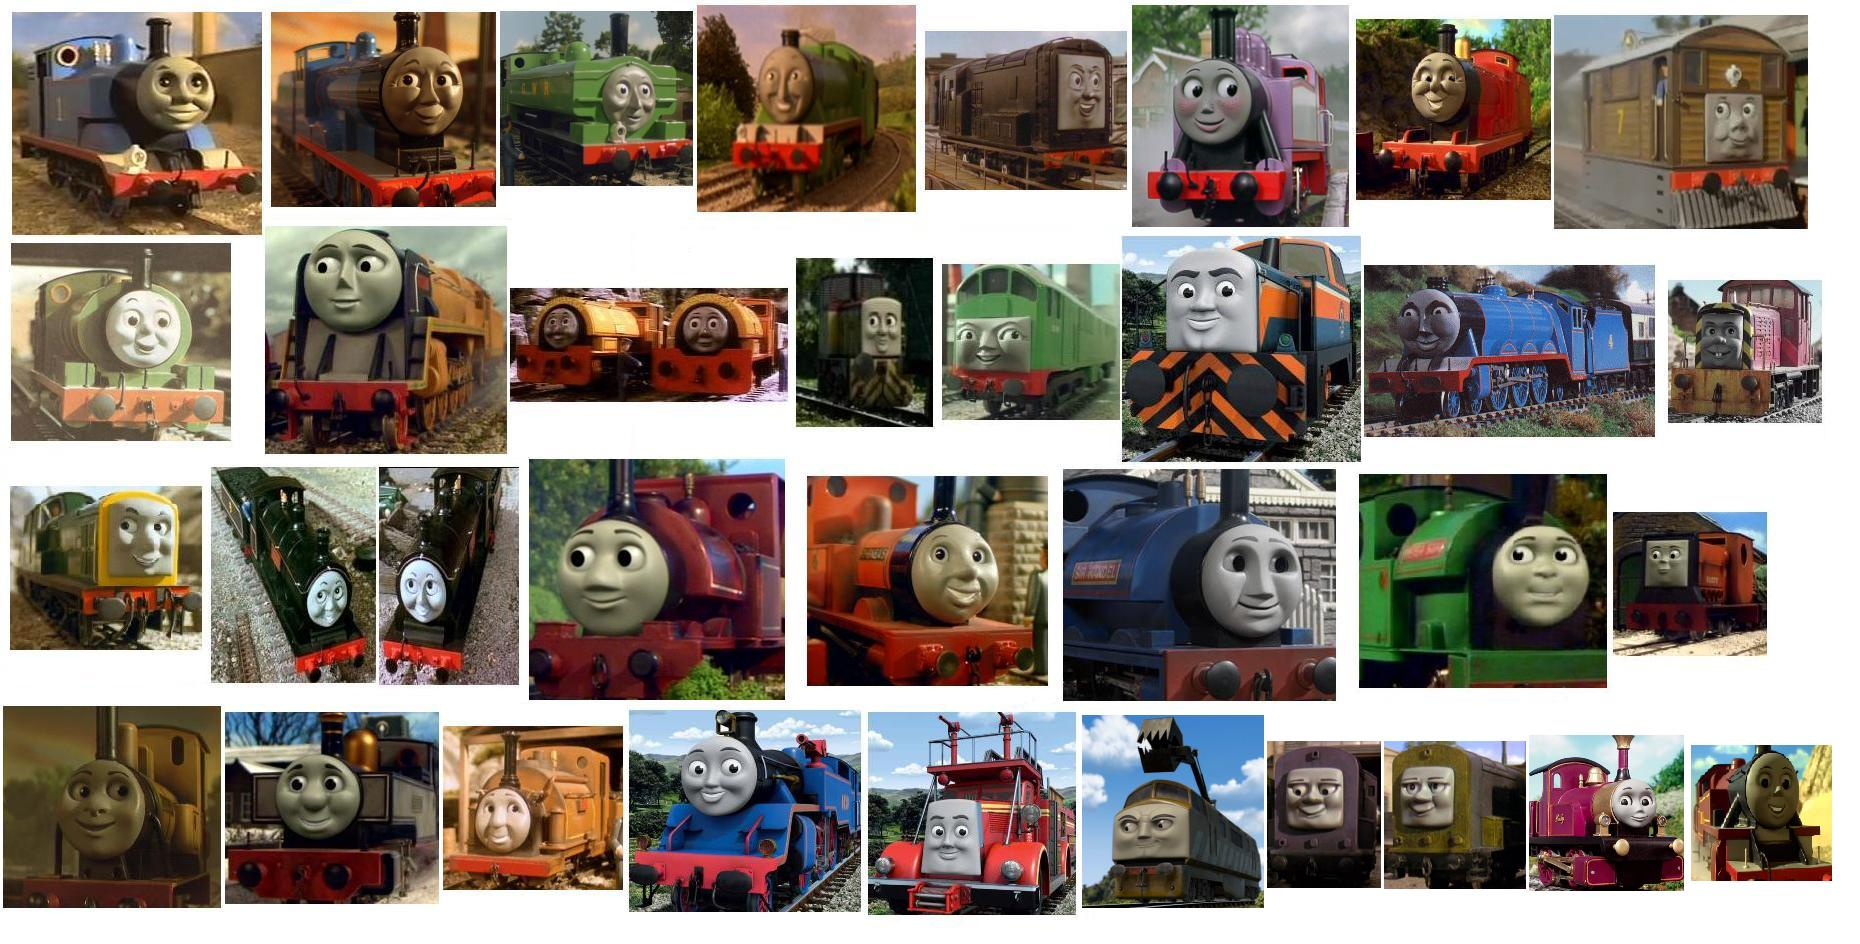 thomas and his friends pics by mighty355 on deviantart